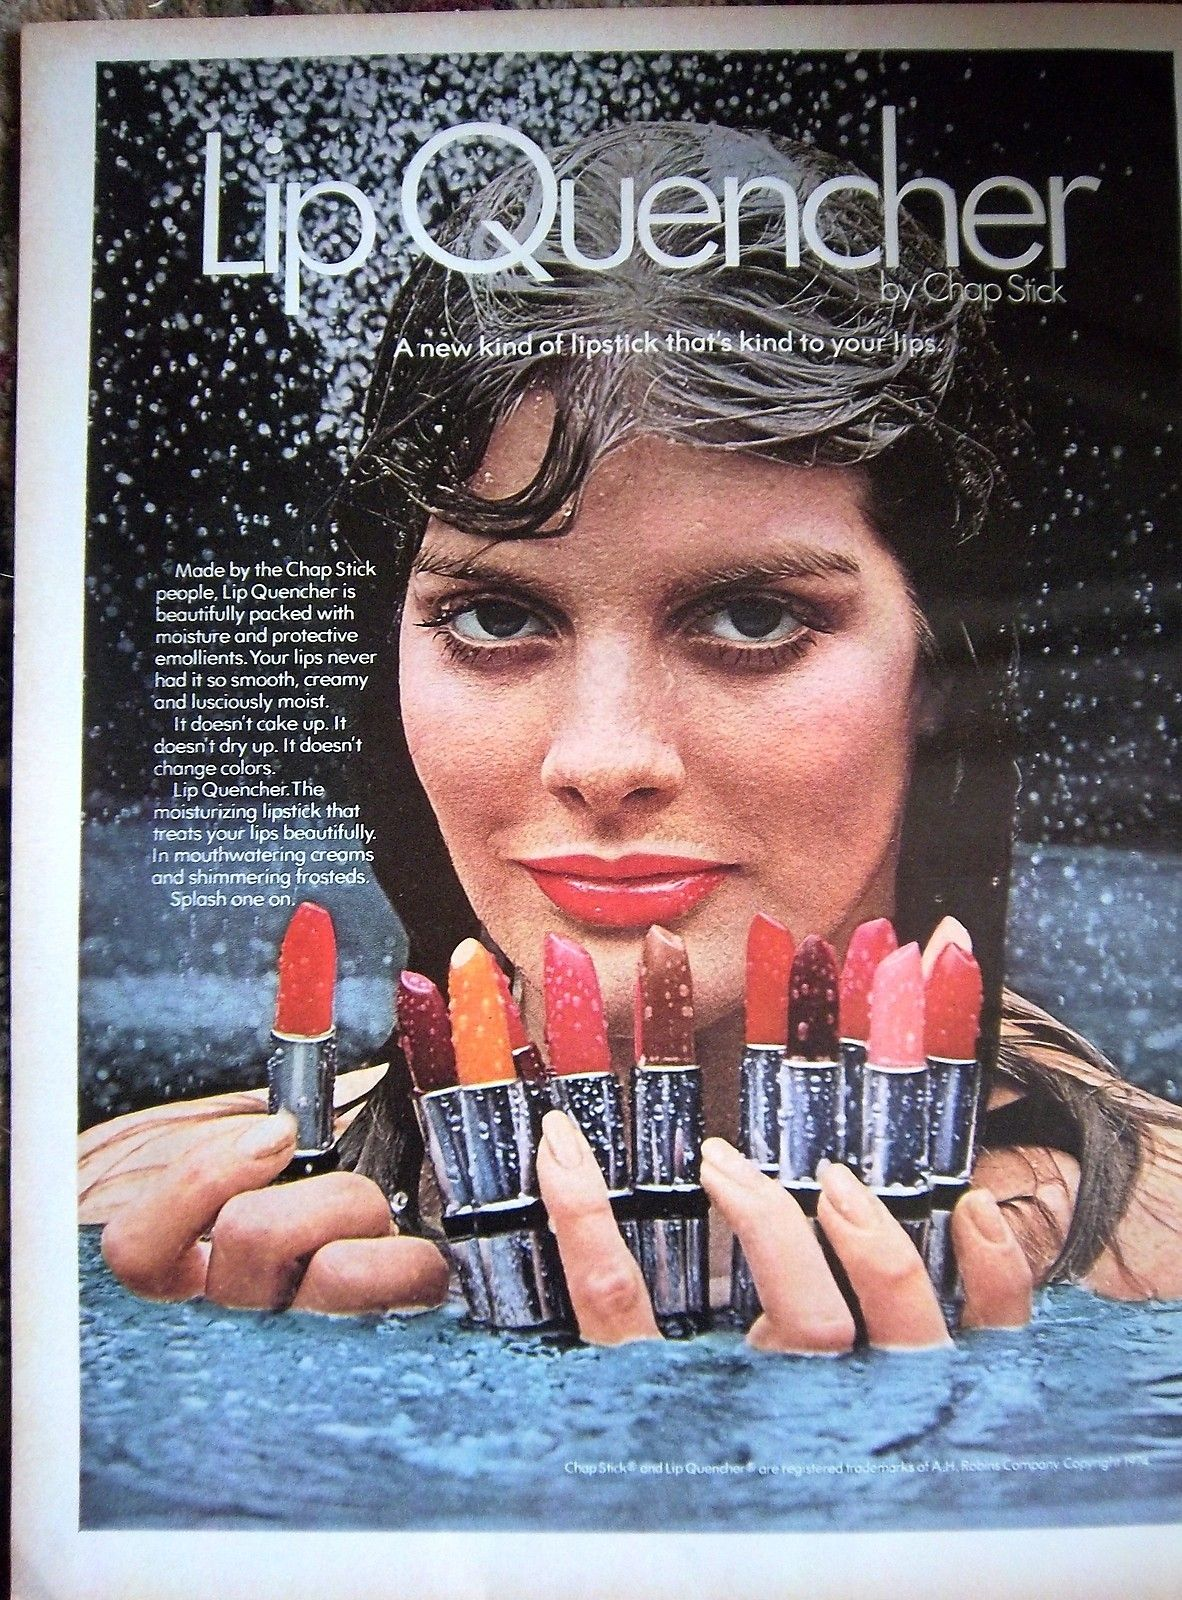 I would pay big bucks for Lip Quencher lipstick. Thought